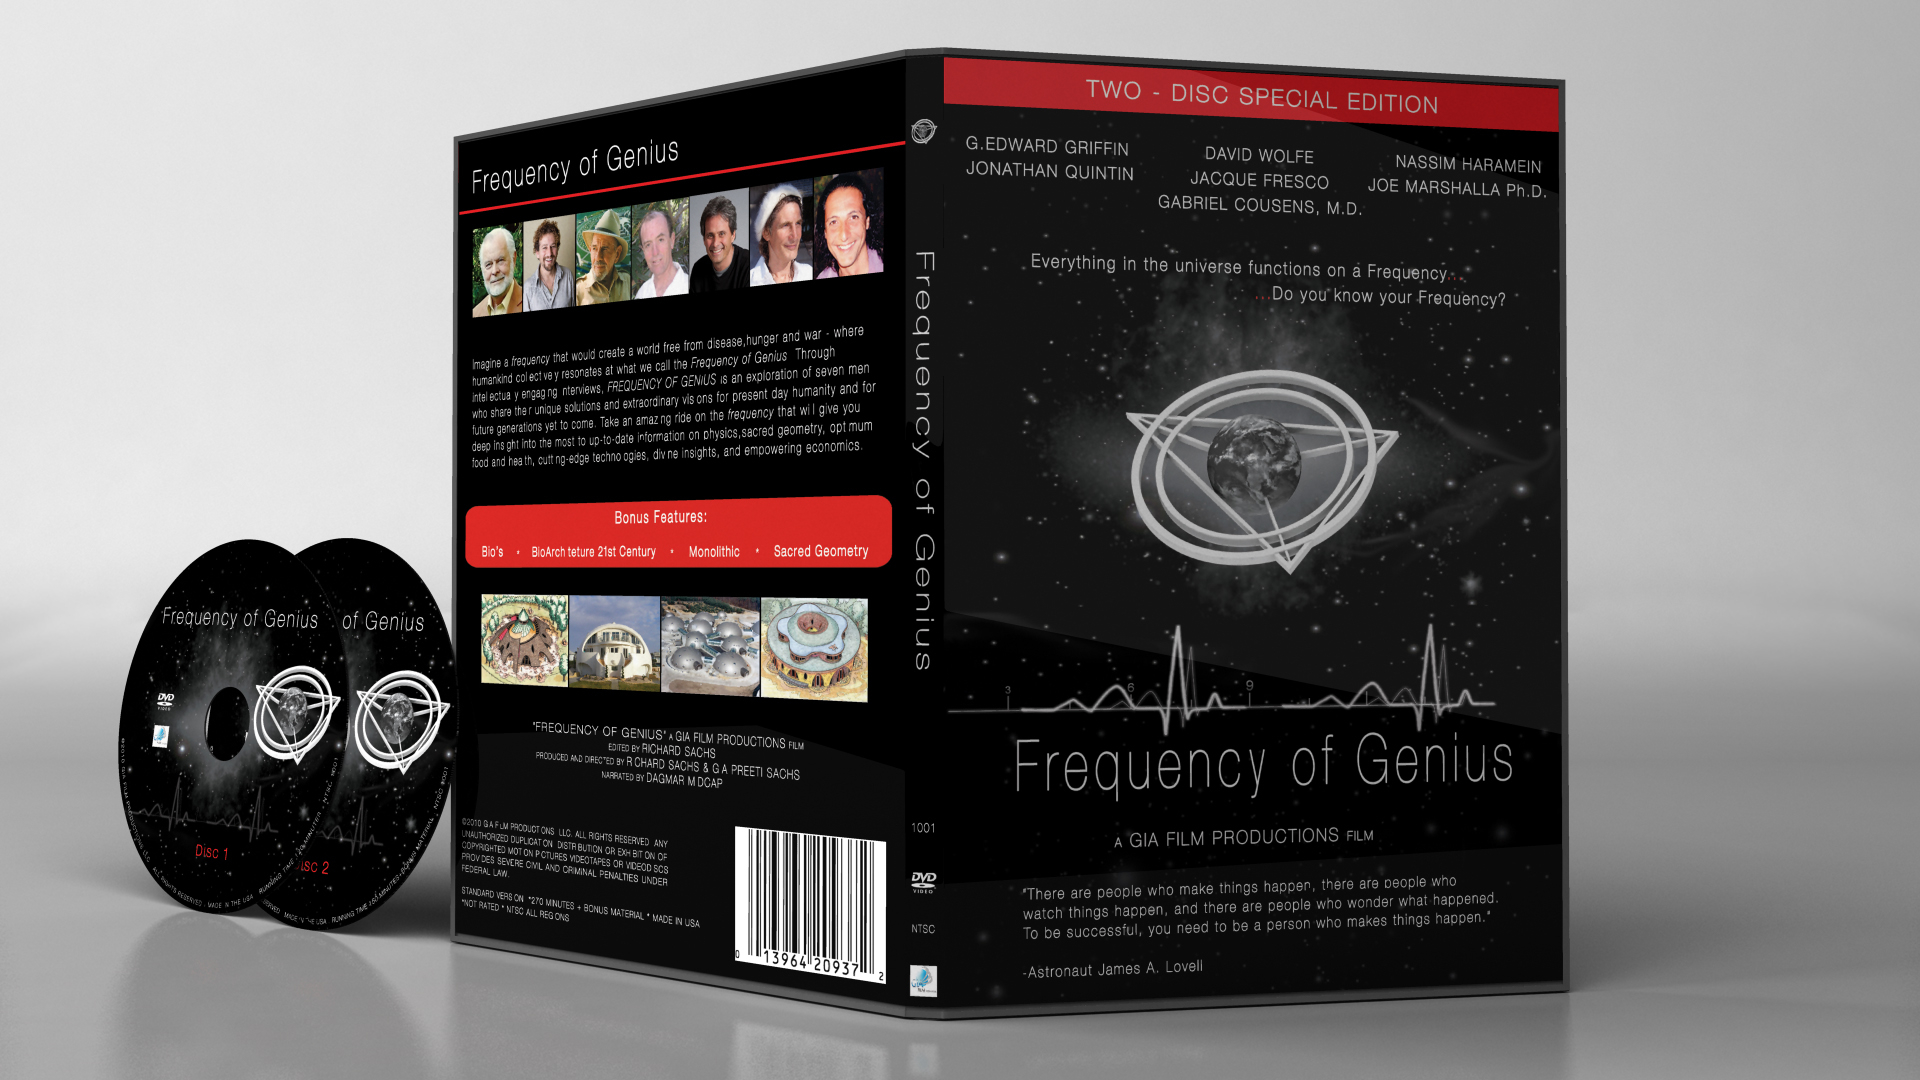 Frequency of Genius DVD - ON SALE!